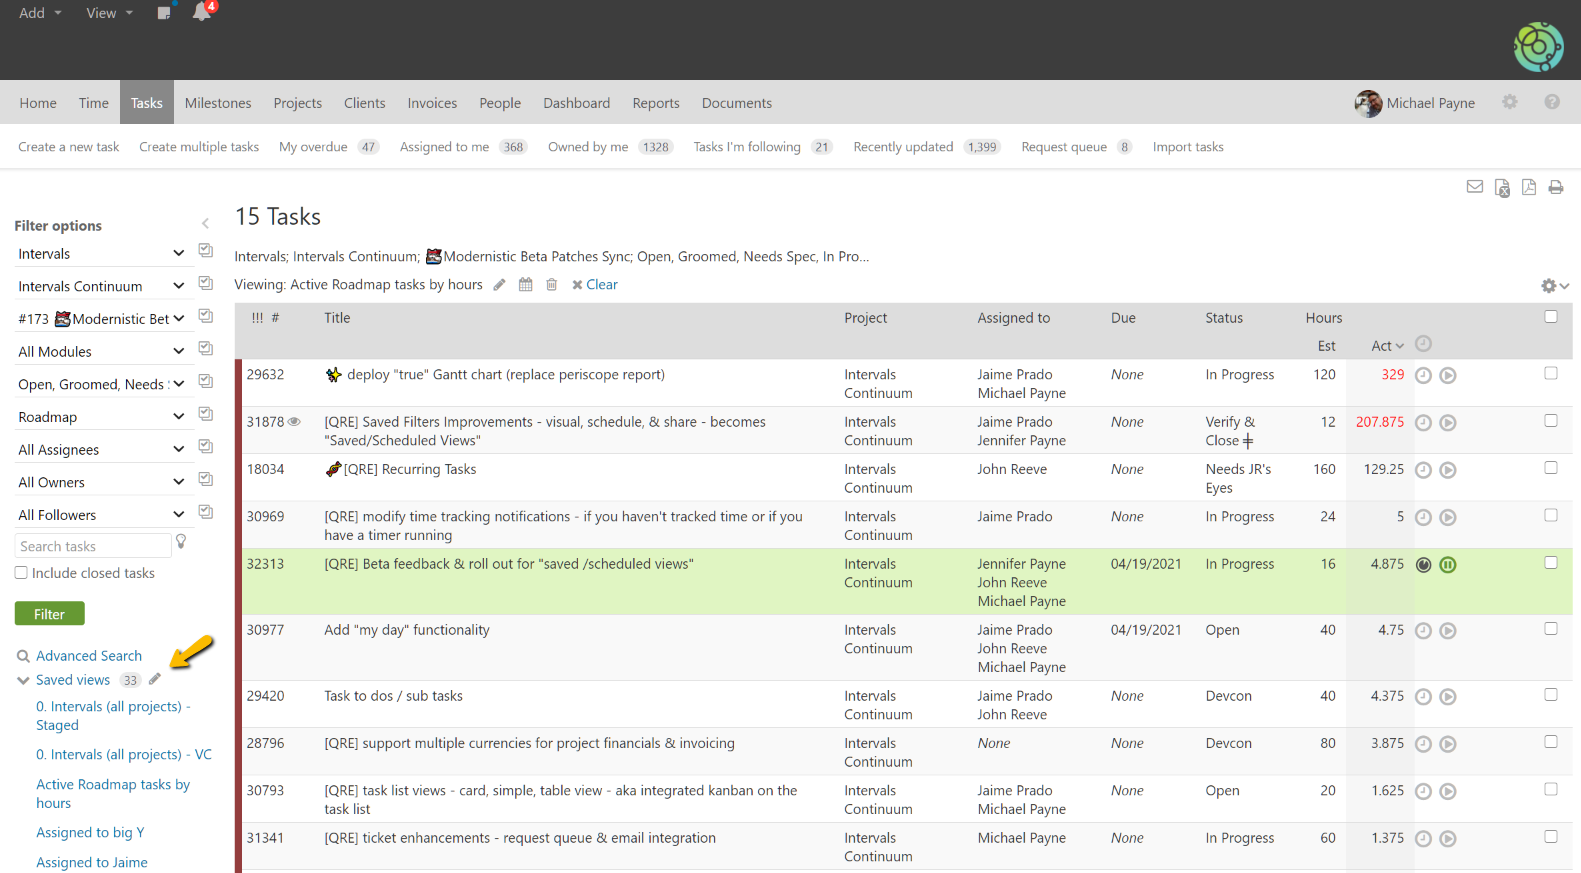 Manage Shared Views